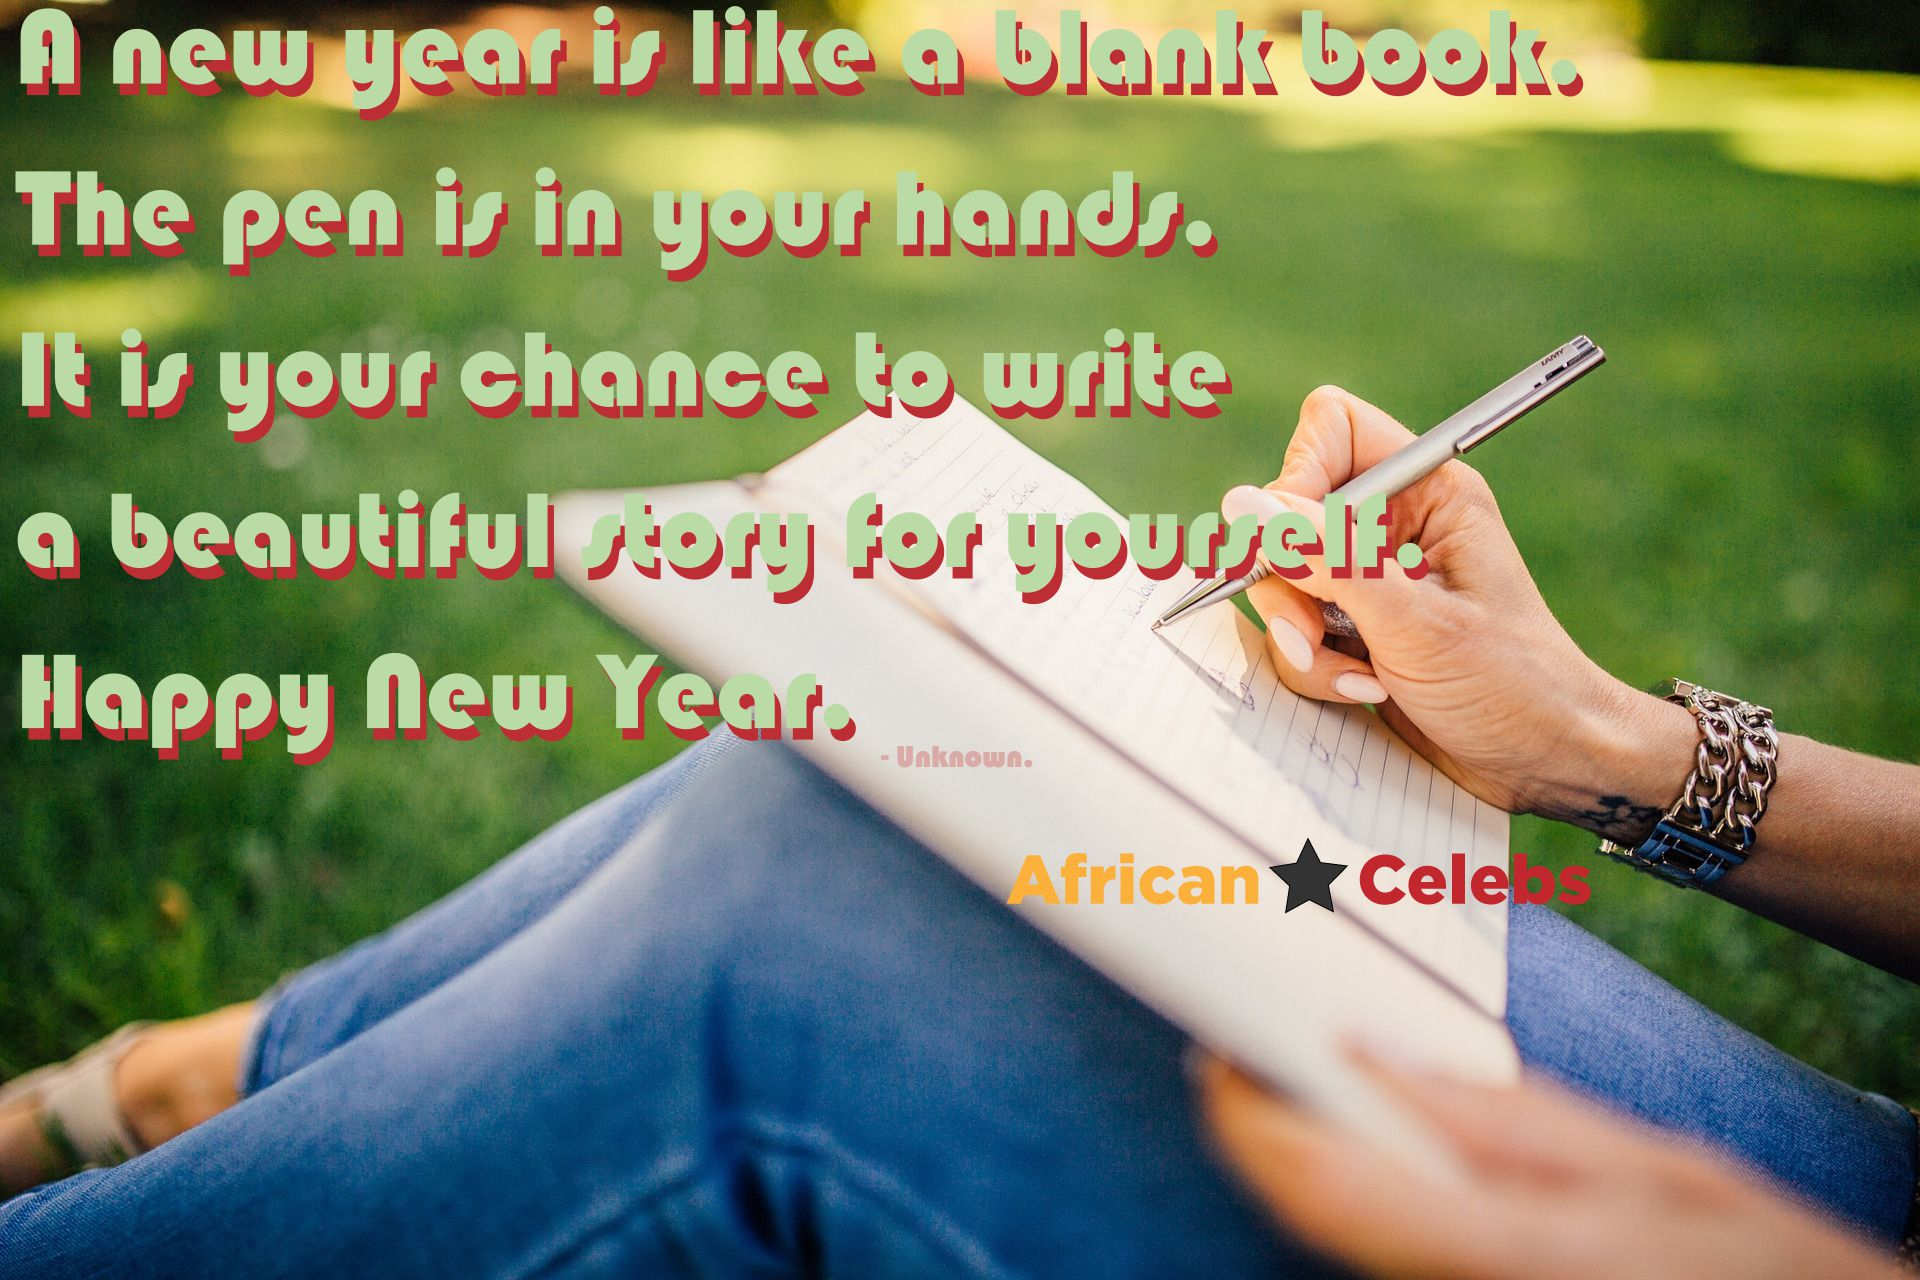 Happy New Year 2016: A new year is like a blank book